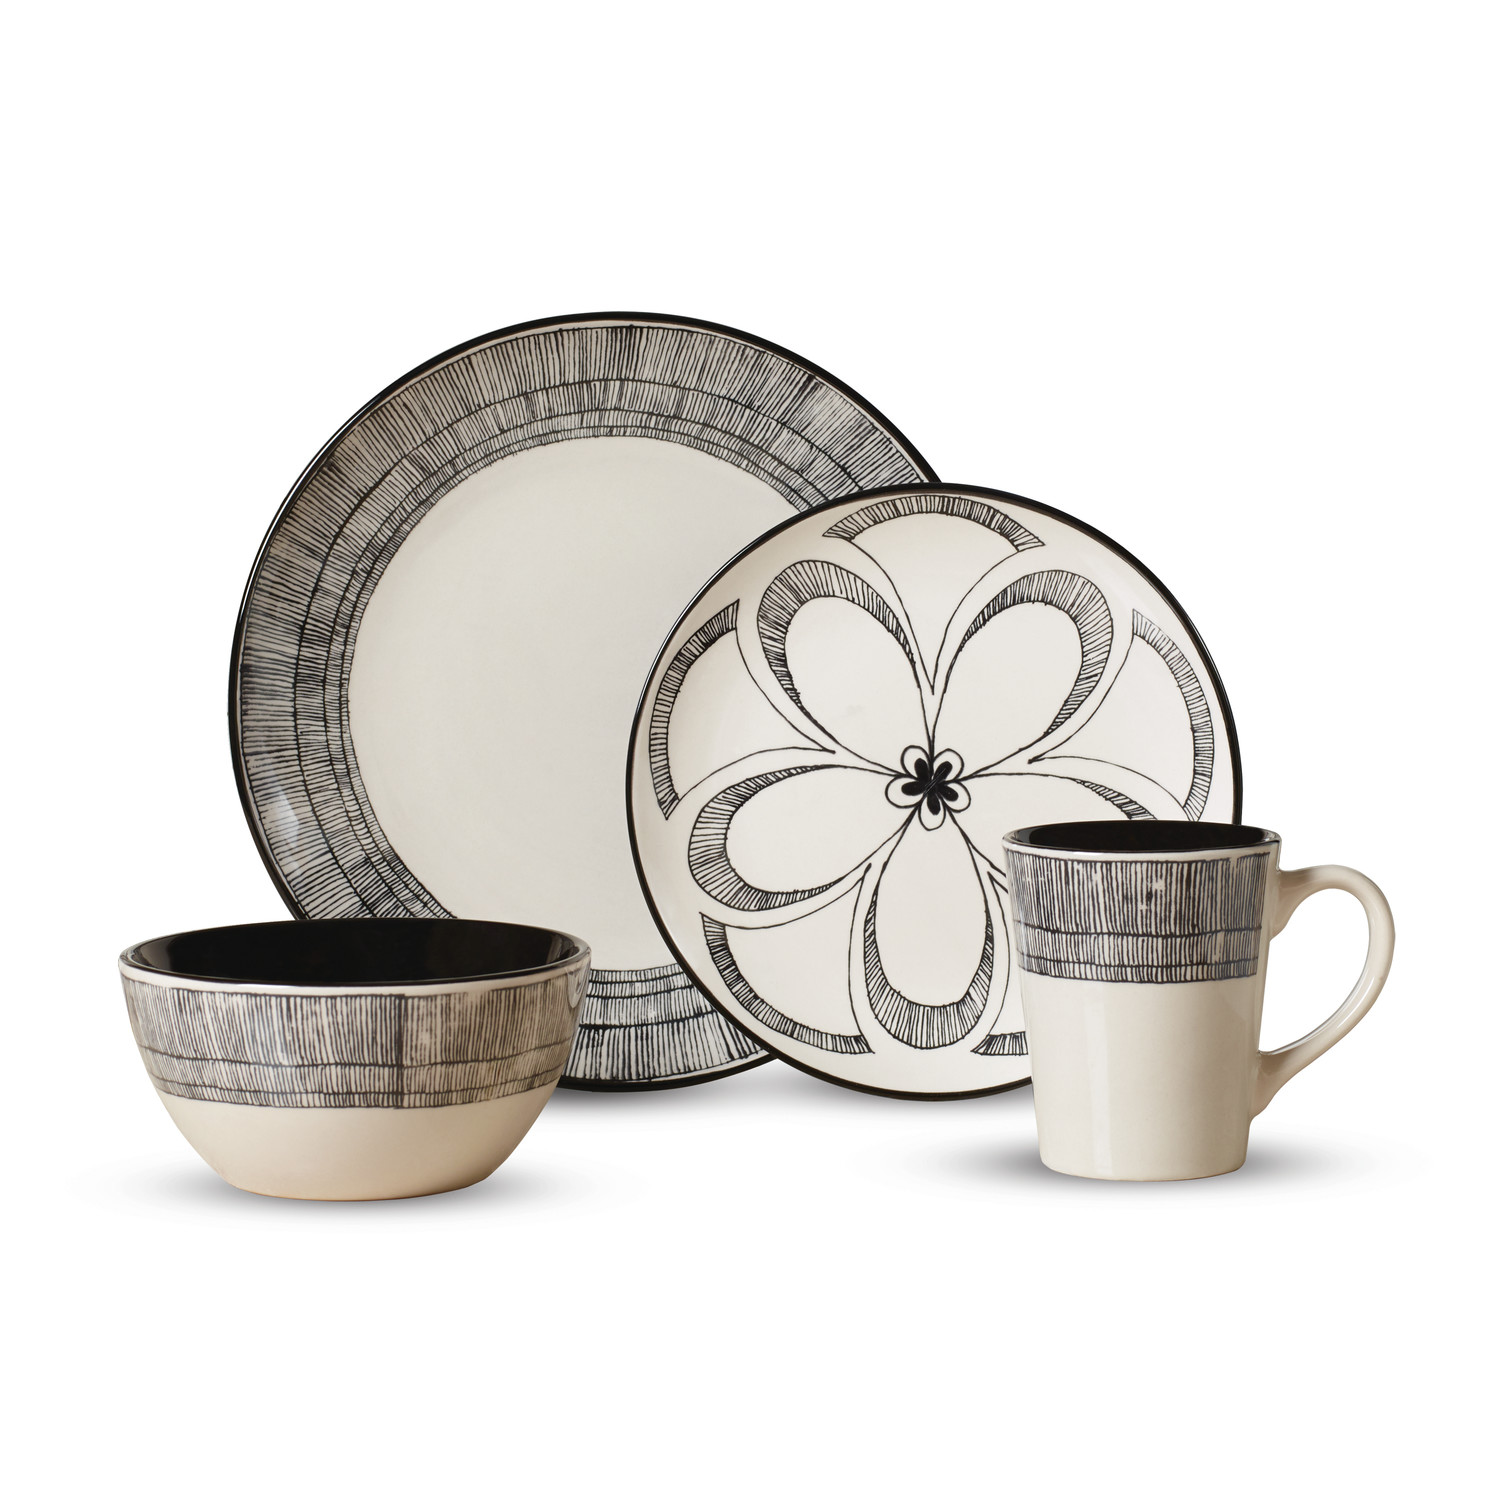 Pfaltzgraff Dinnerware set in cute pattern for lovely dinnerware ideas